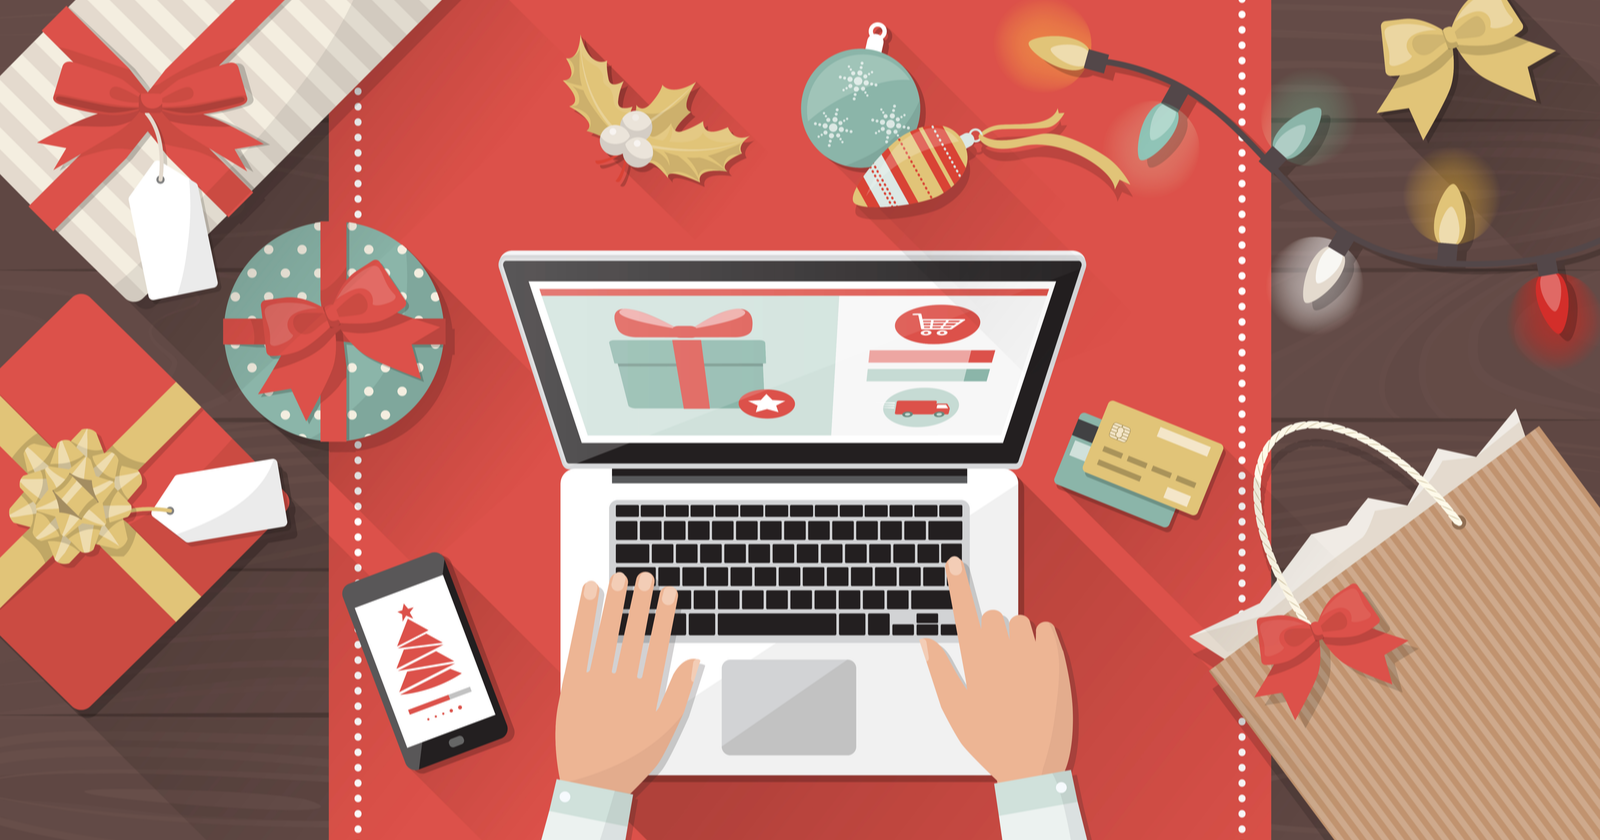 18 Safe Ways to Prepare & Optimize Your Website for the Holidays